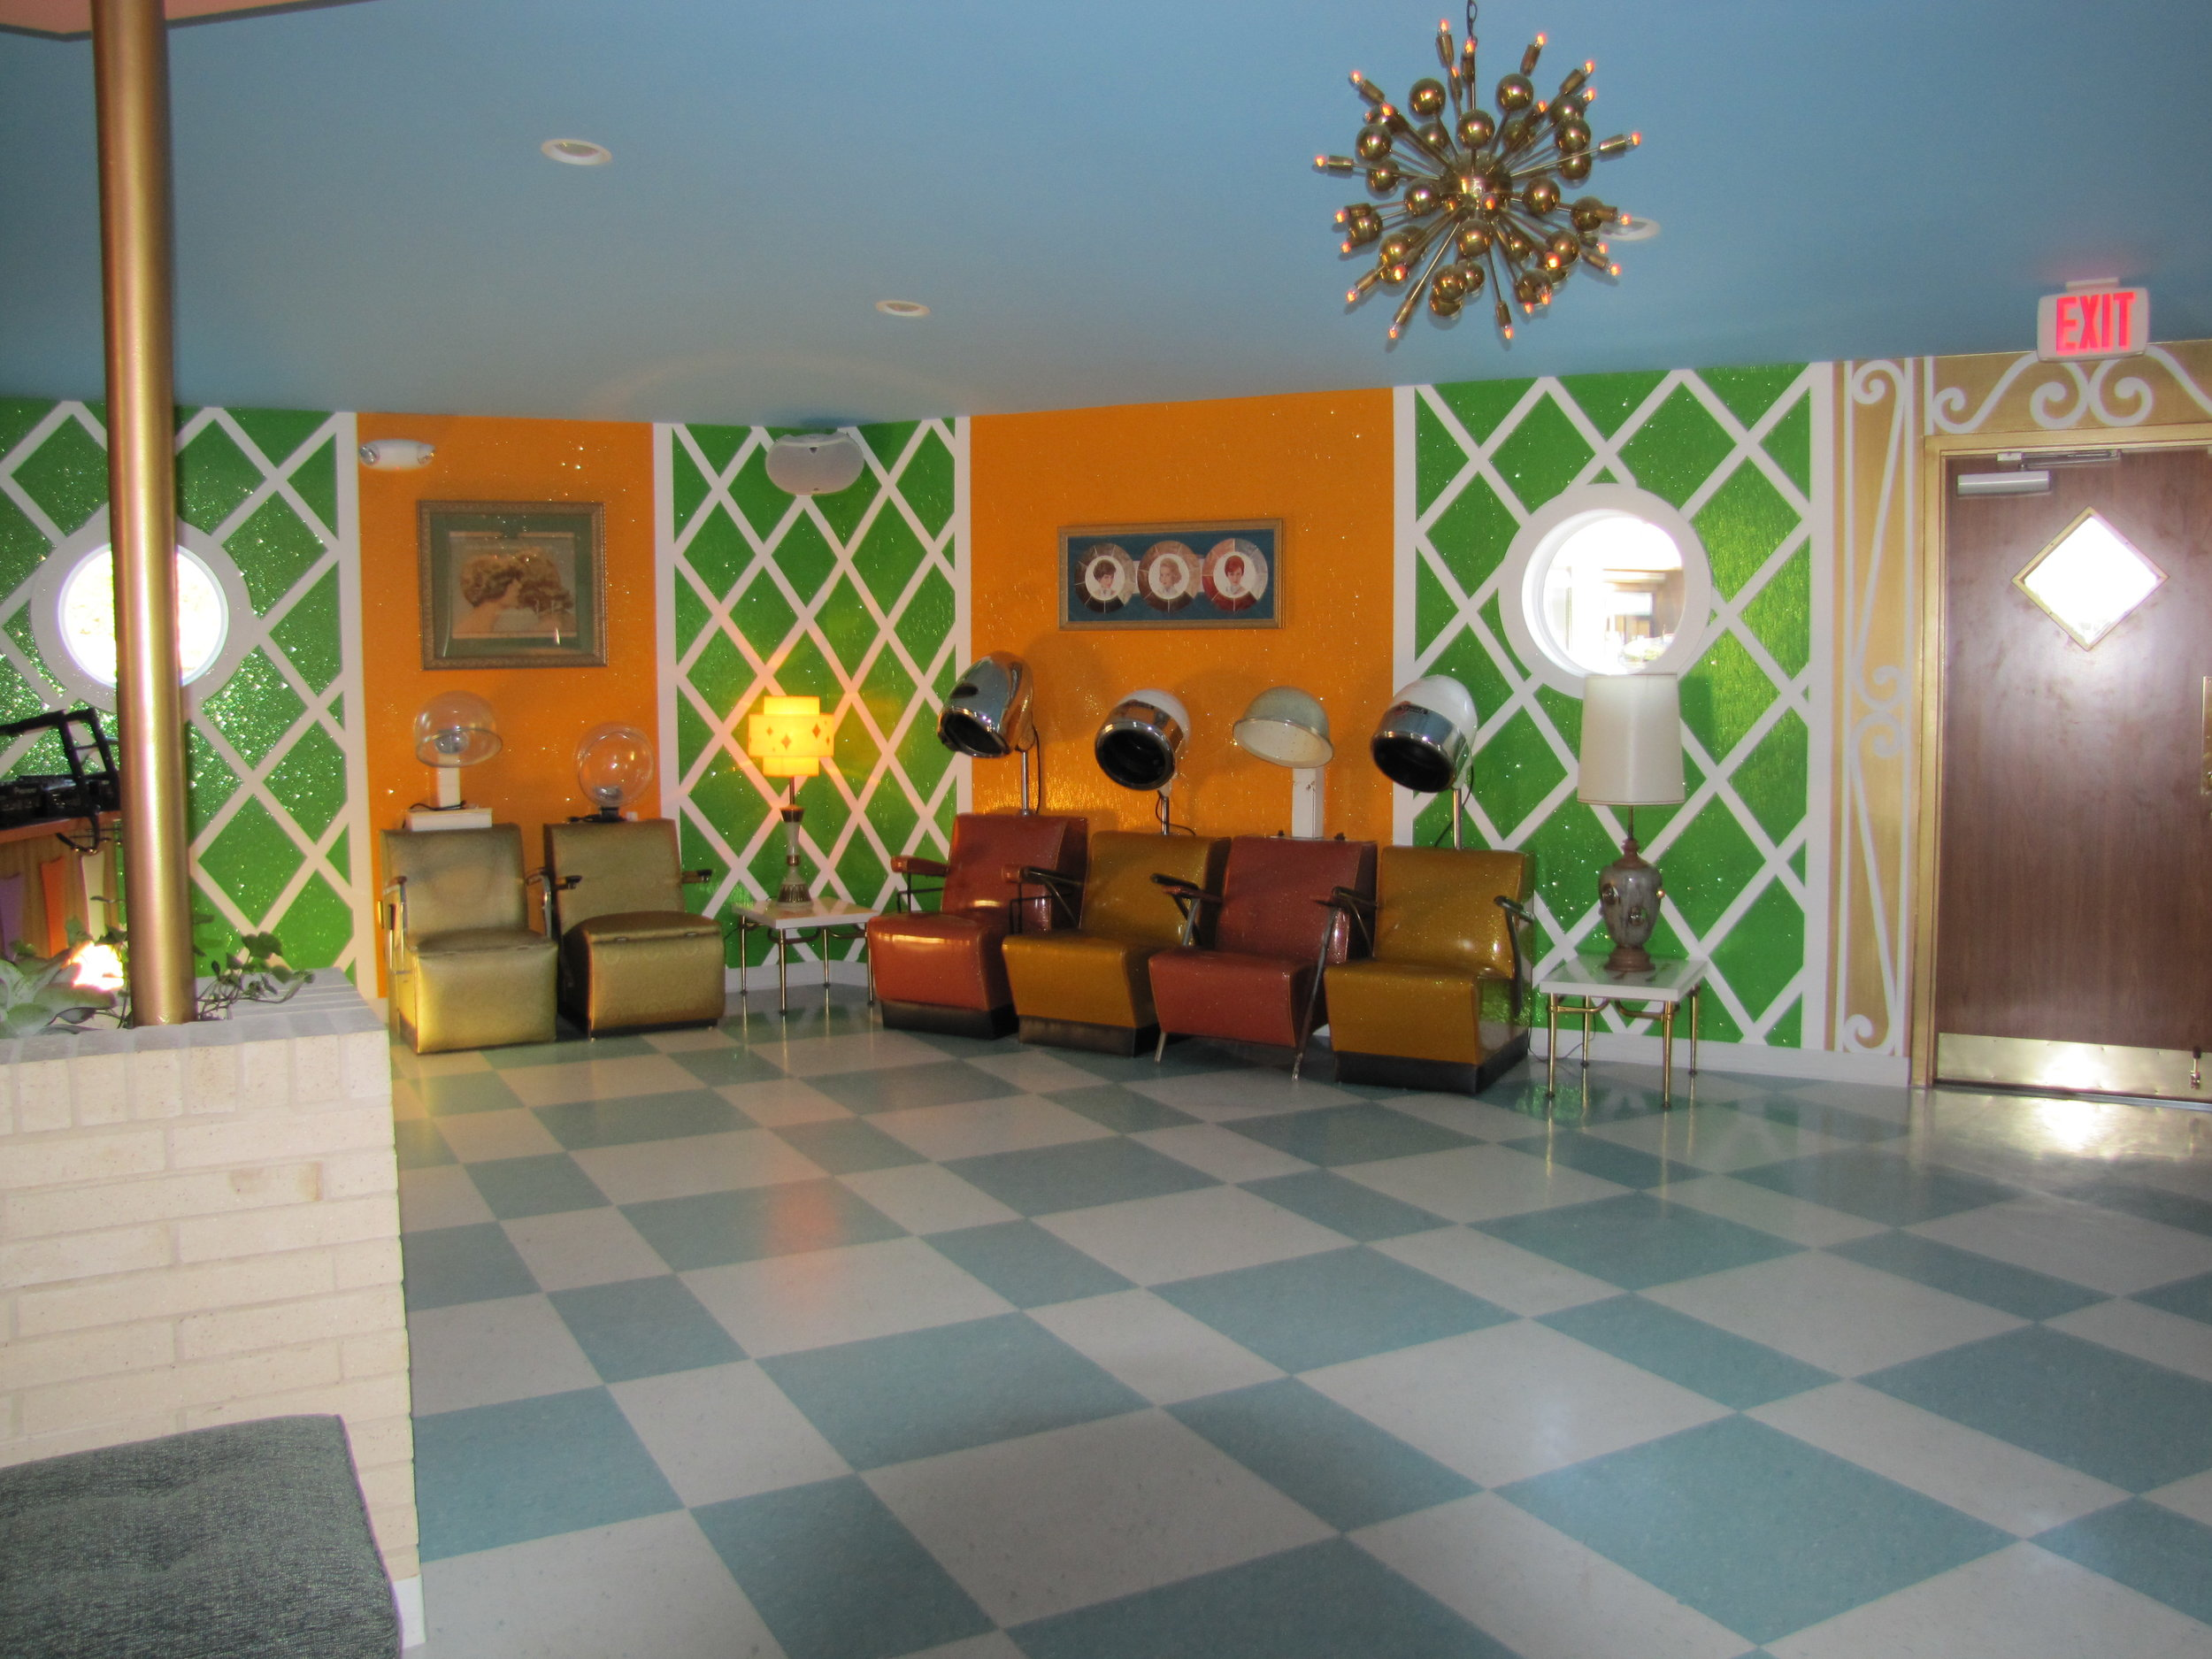 Beauty Bar Dallas 015.jpg